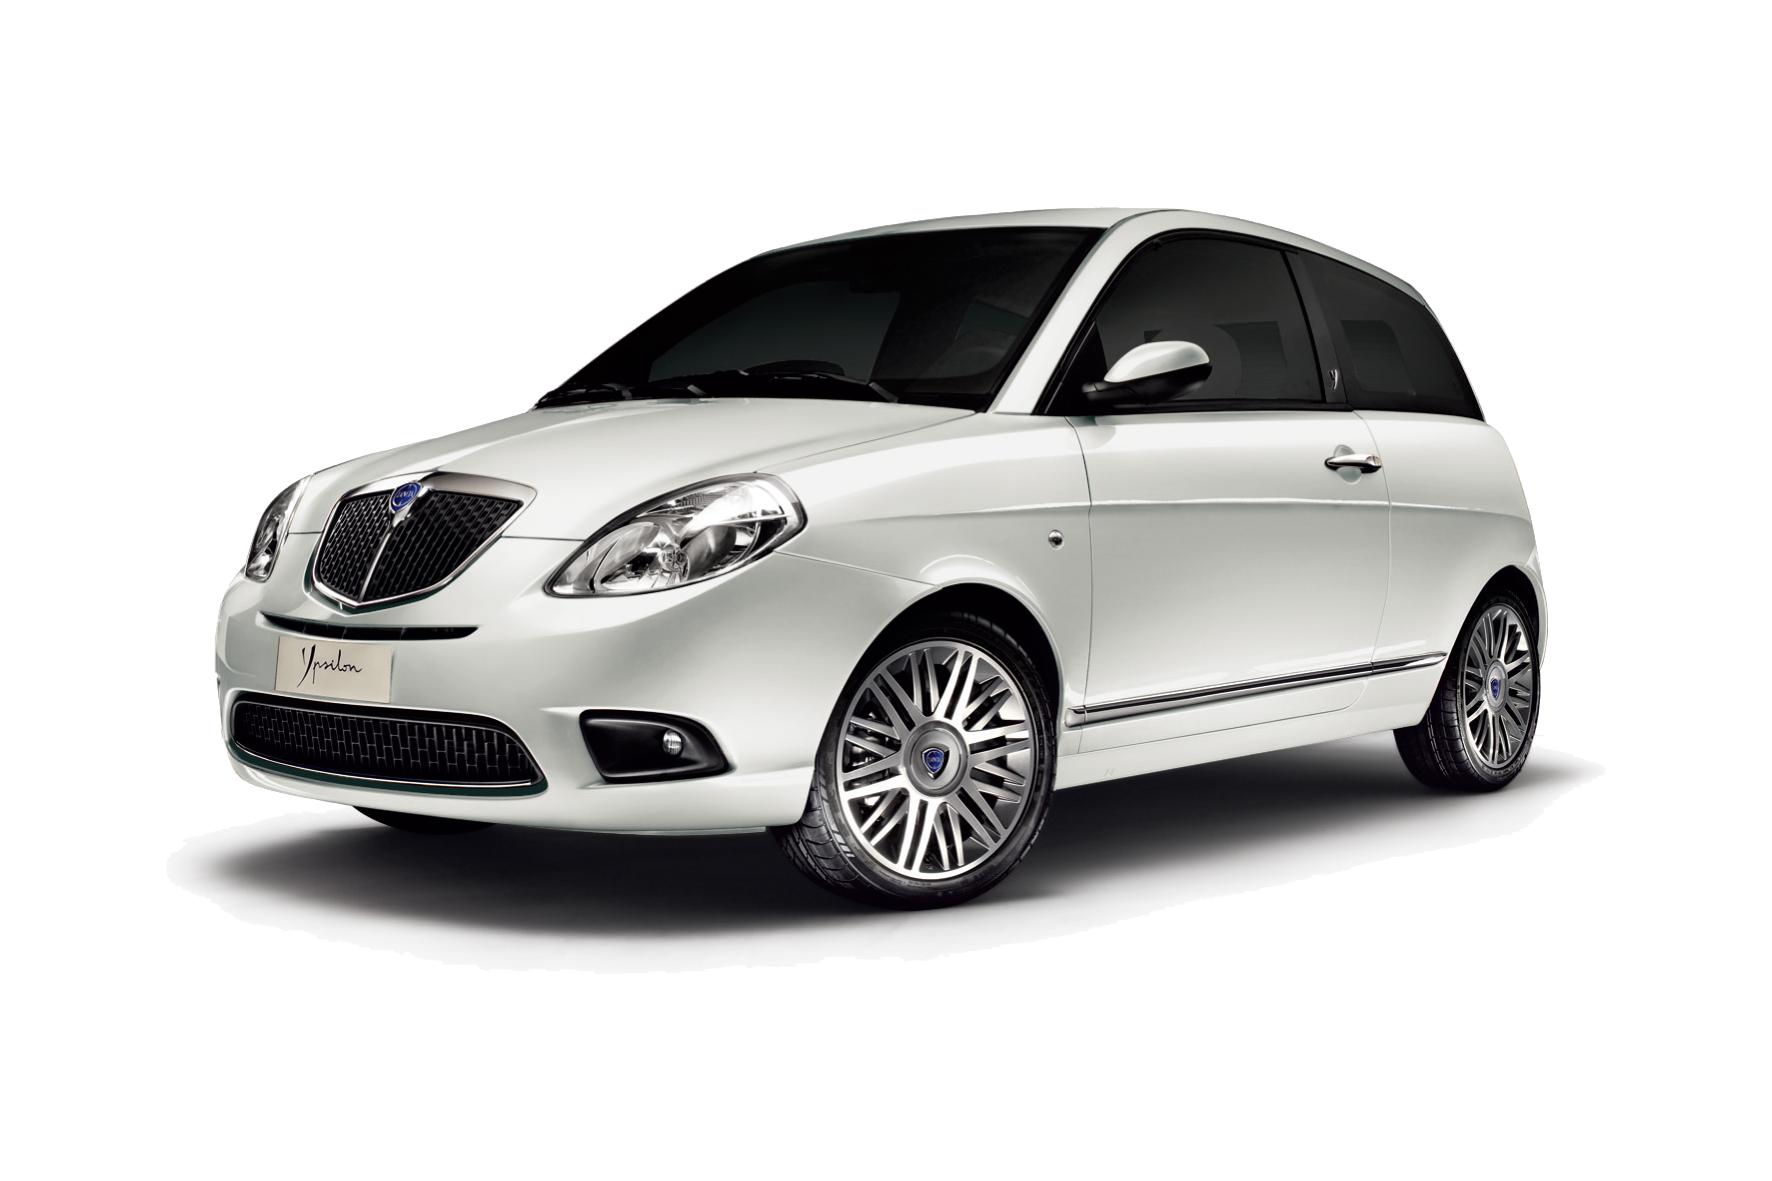 https://www.automobilesreview.com/gallery/lancia-ypsilon-versus/lancia-ypsilon-versus-01.jpg